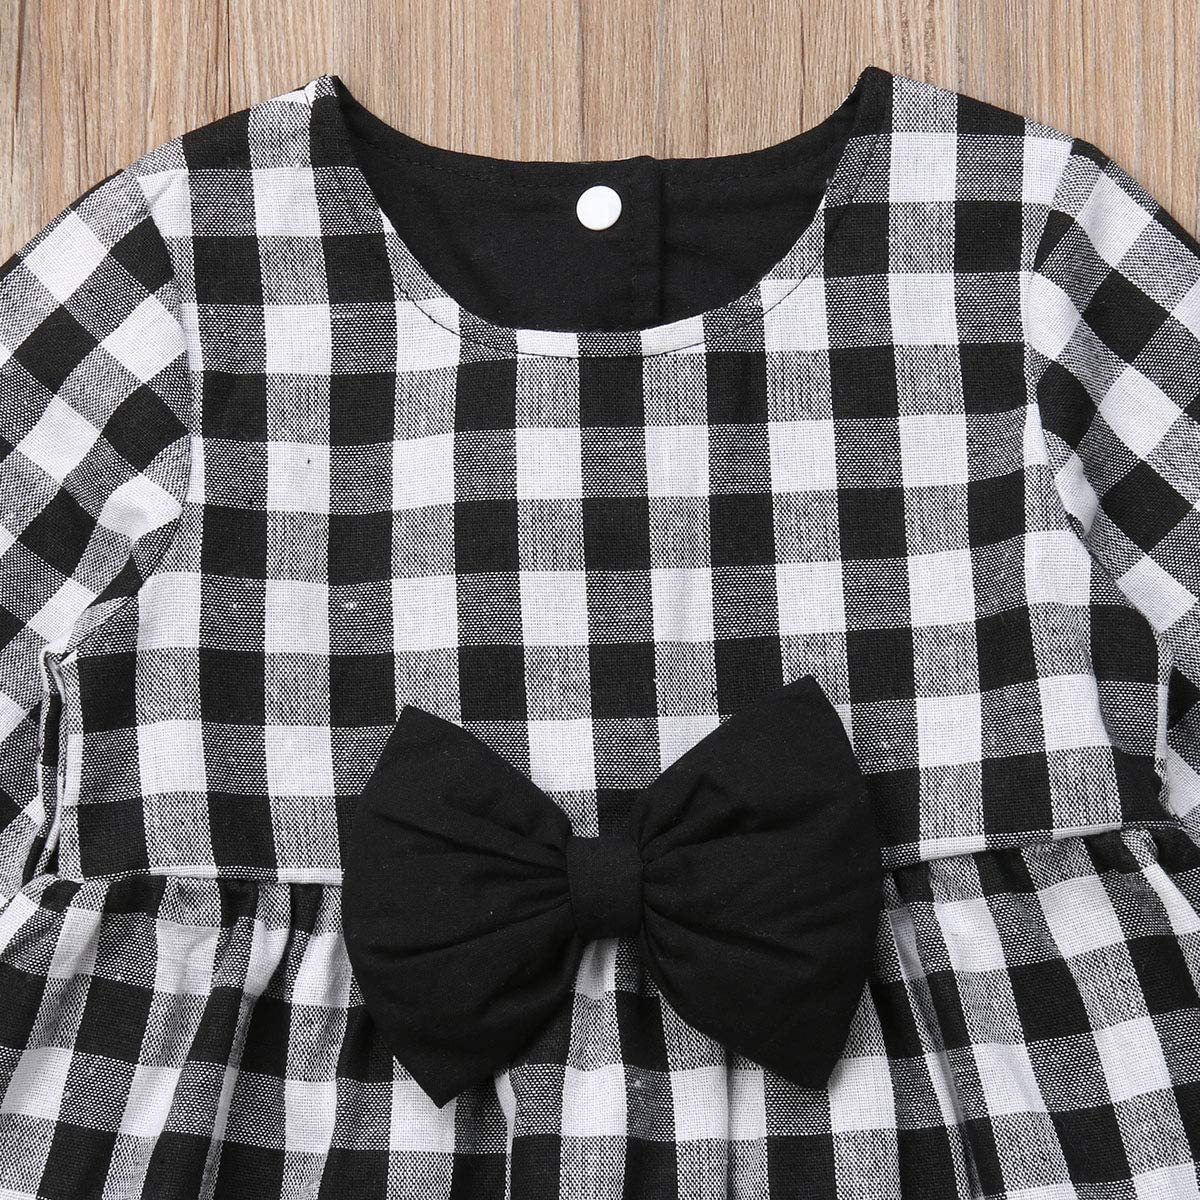 Kids Toddler Baby Girls Bowknot Dress Coat White and Black Buffalo Plaid Winter Outfits Clothes